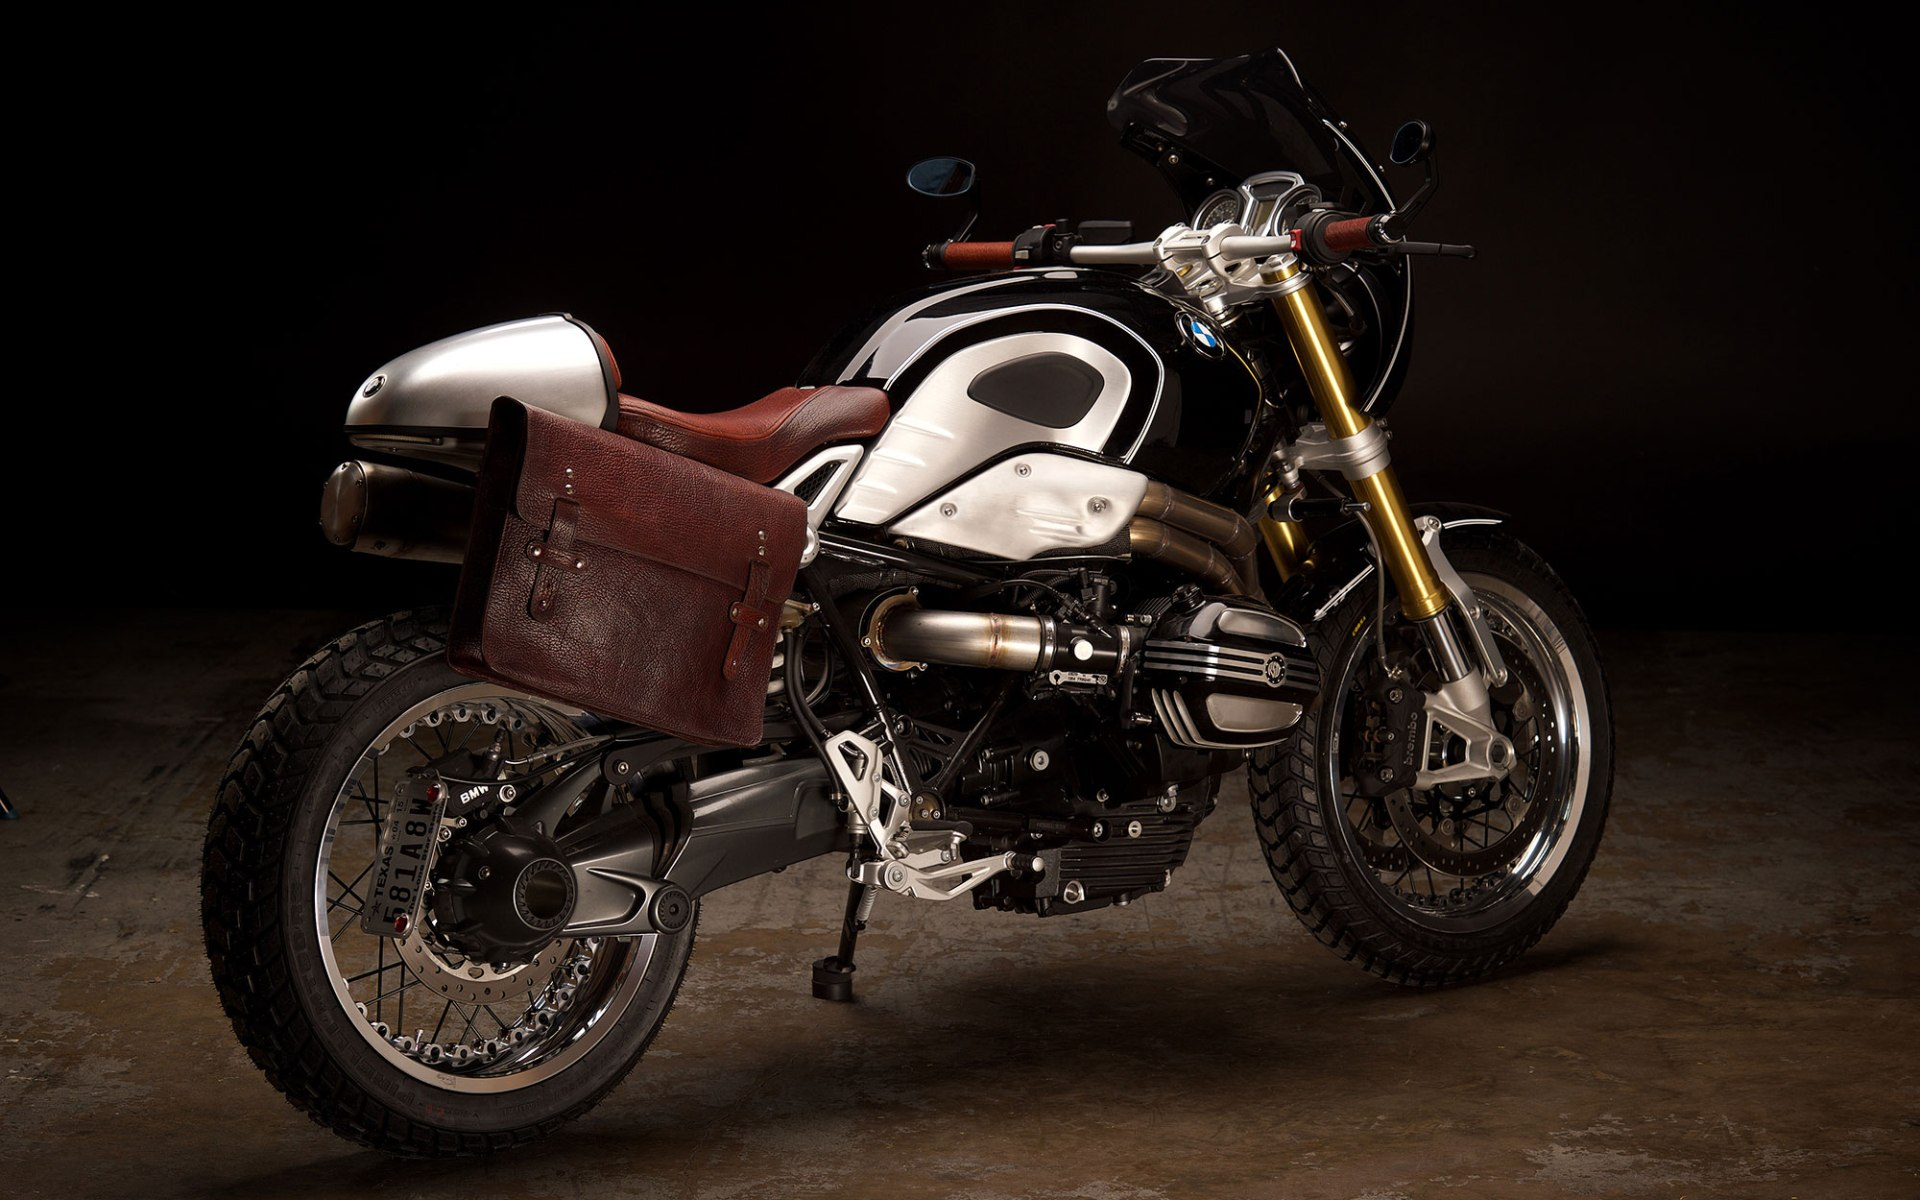 BMW R NineT Wallpapers